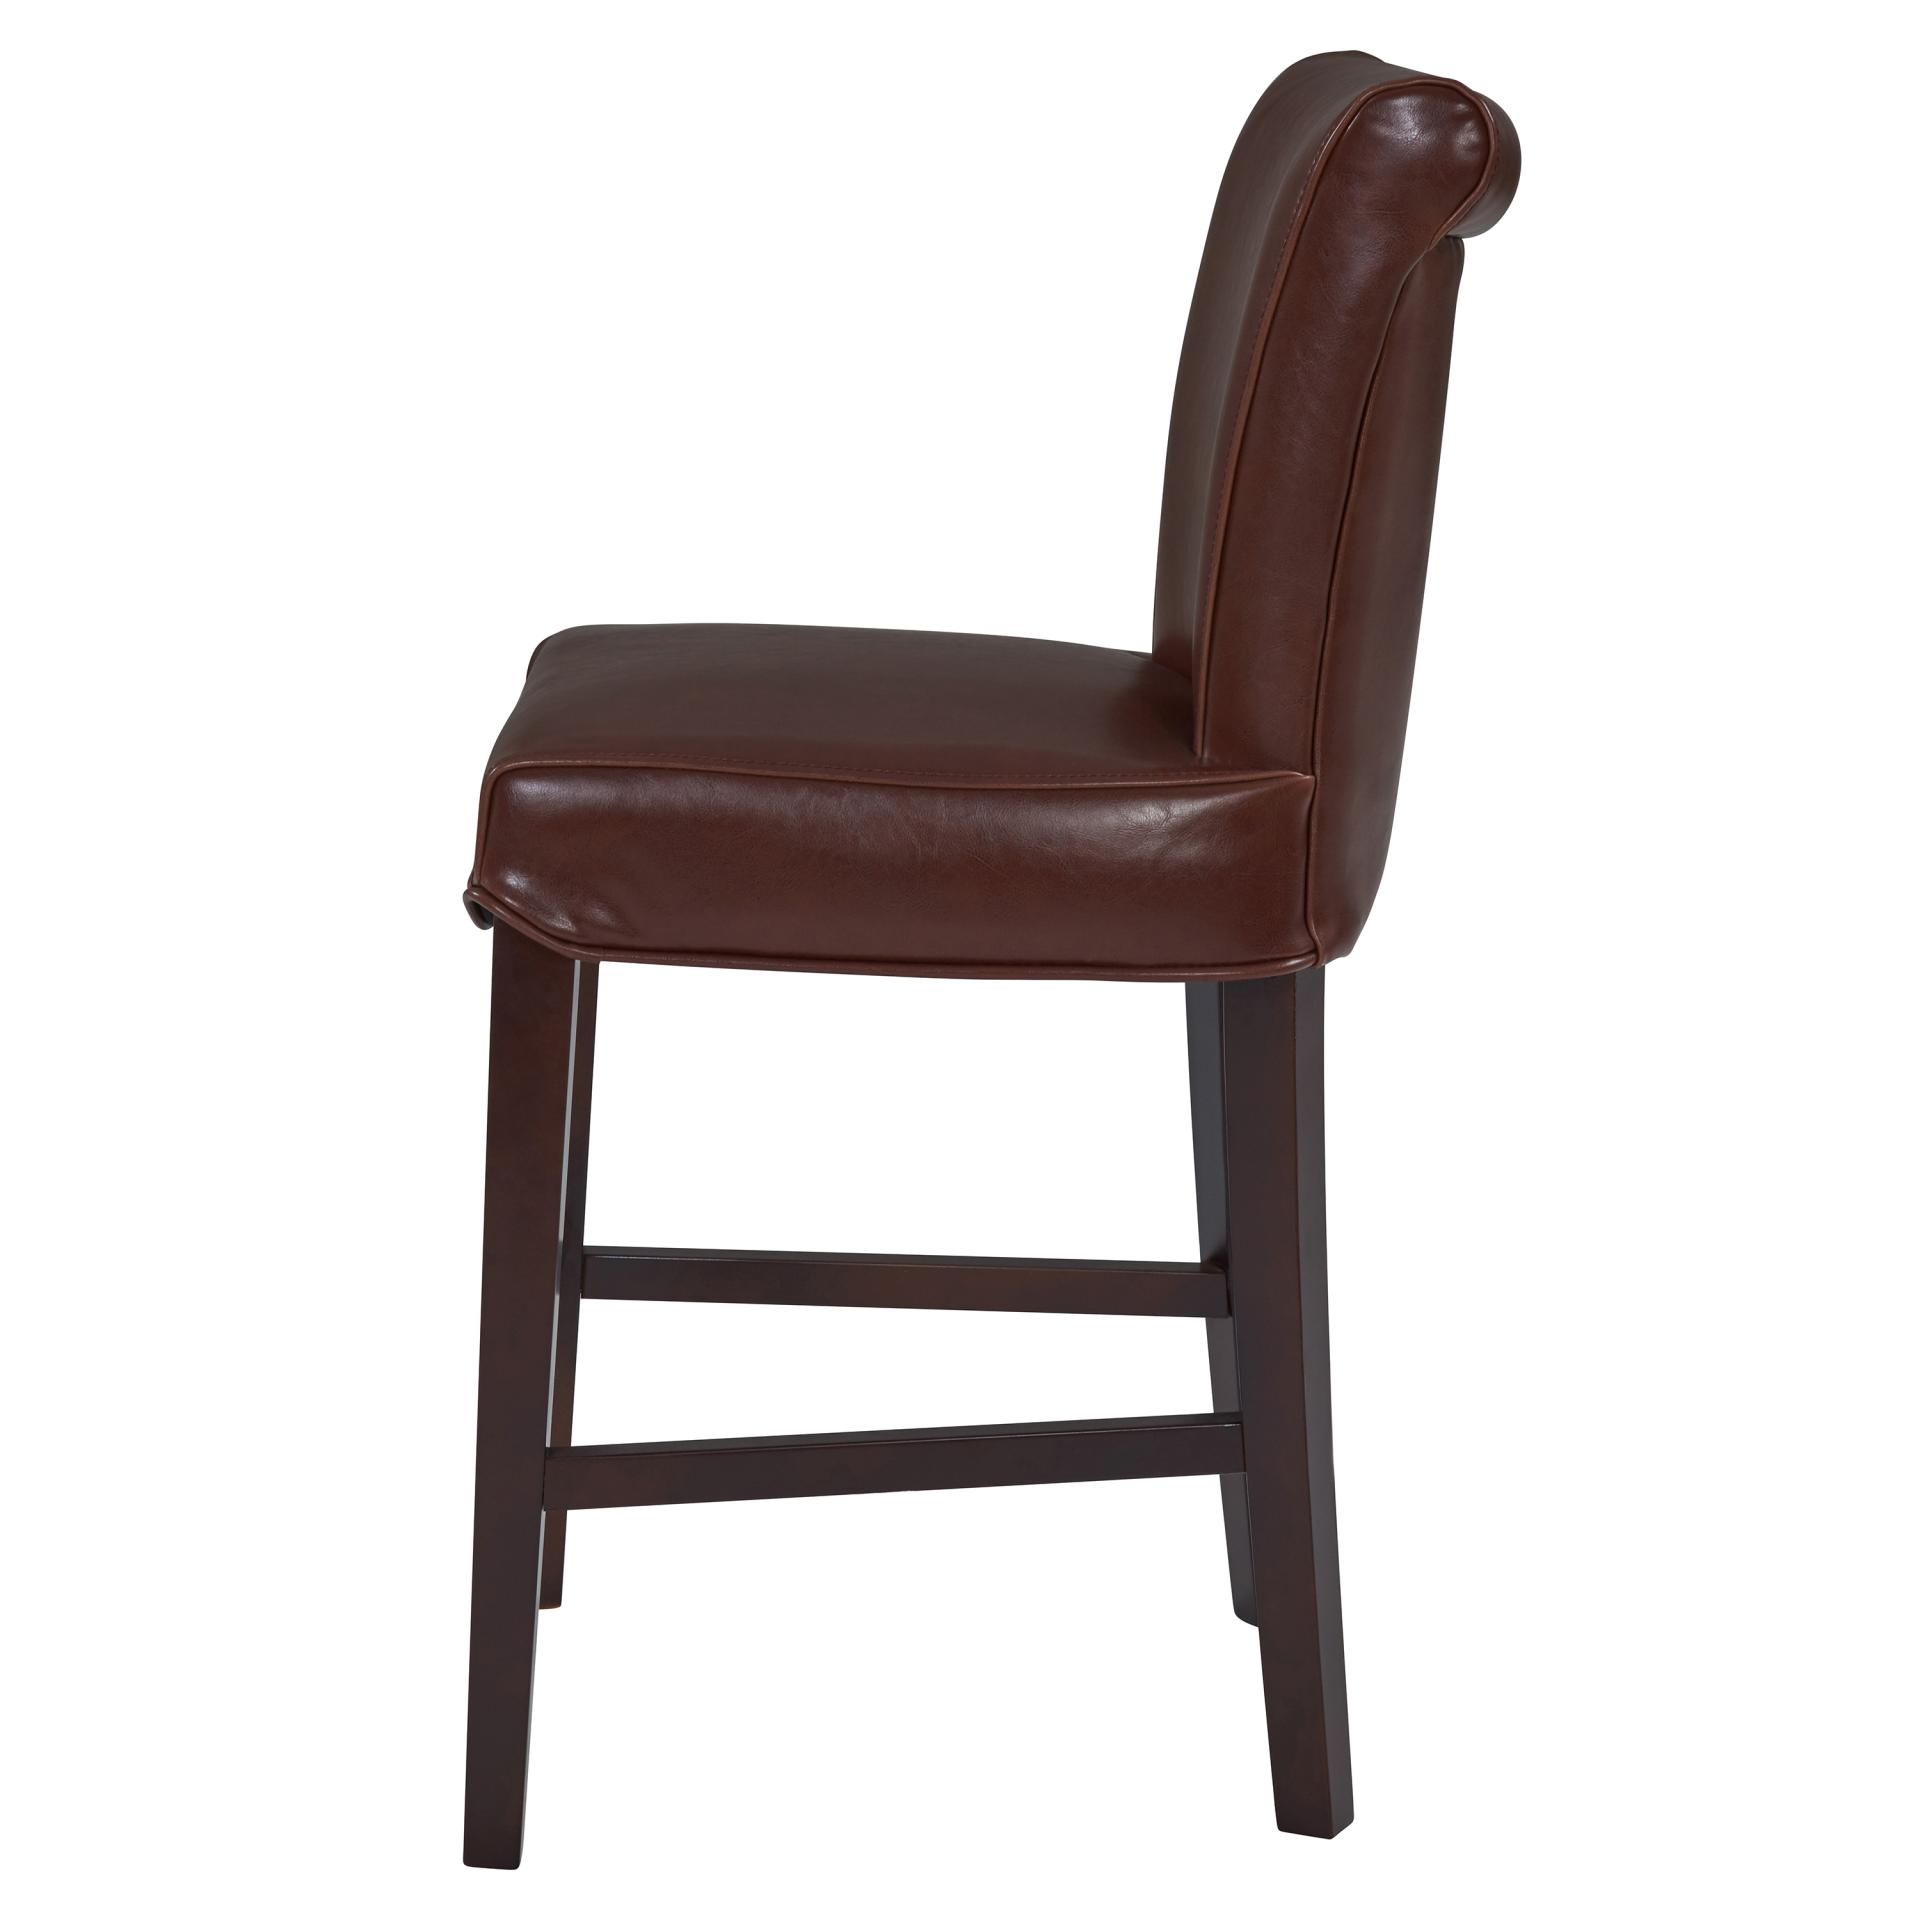 Wholesale Interiors Cognac Dark Brown Leather Bar Stool: Wholesale Lifestyle Furnishings